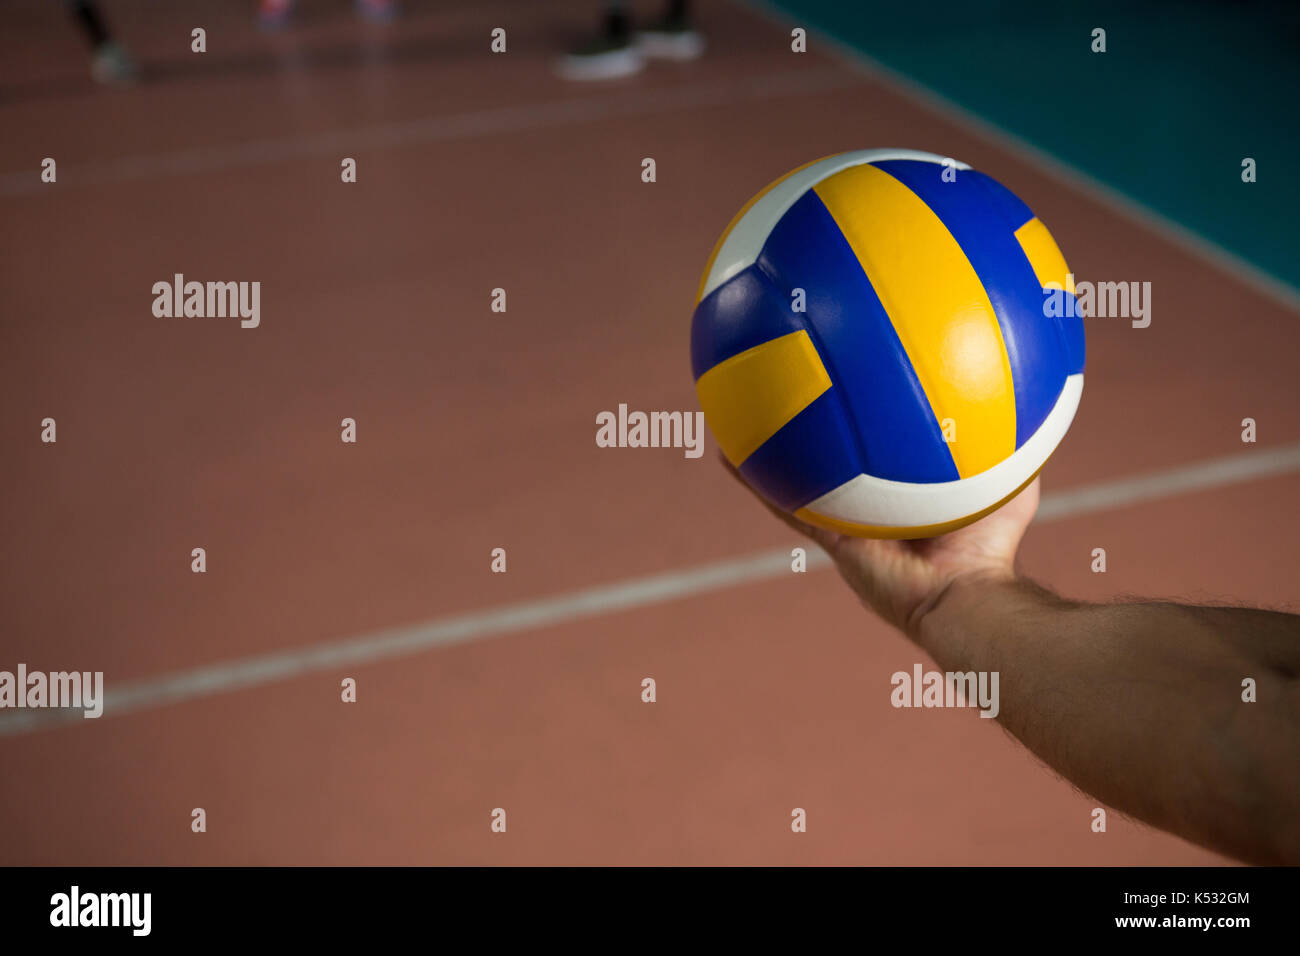 Cropped hand of sportsperson with volleyball at court - Stock Image